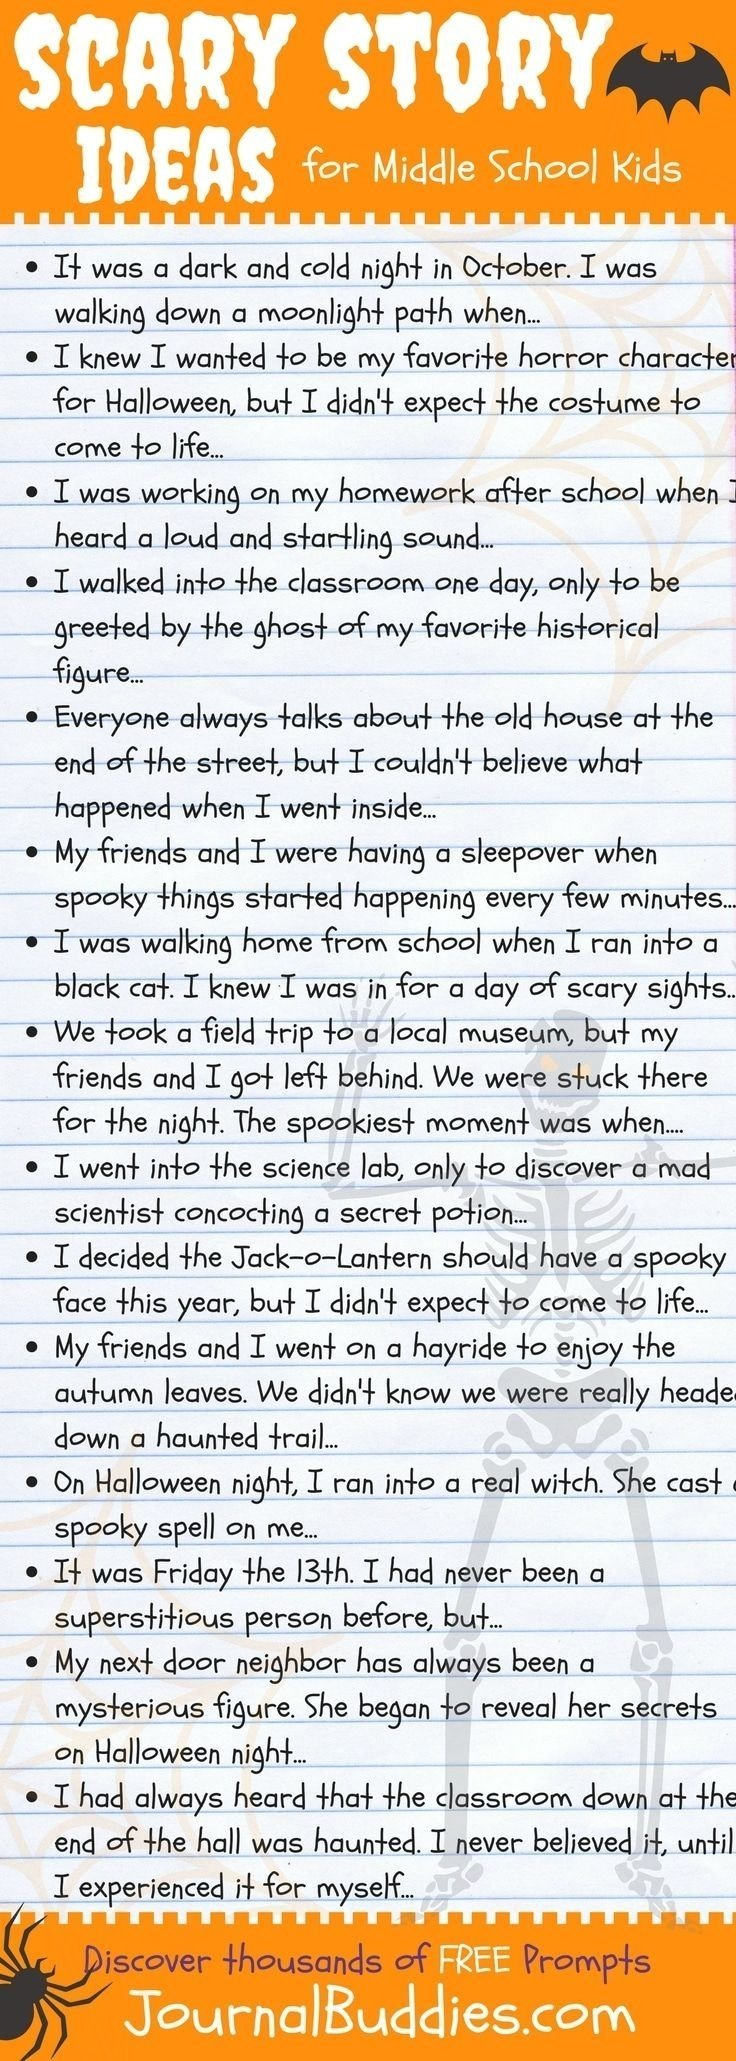 10 Spectacular Ideas For A Horror Story scary story writing ideas for middle school kids writing skills 2020